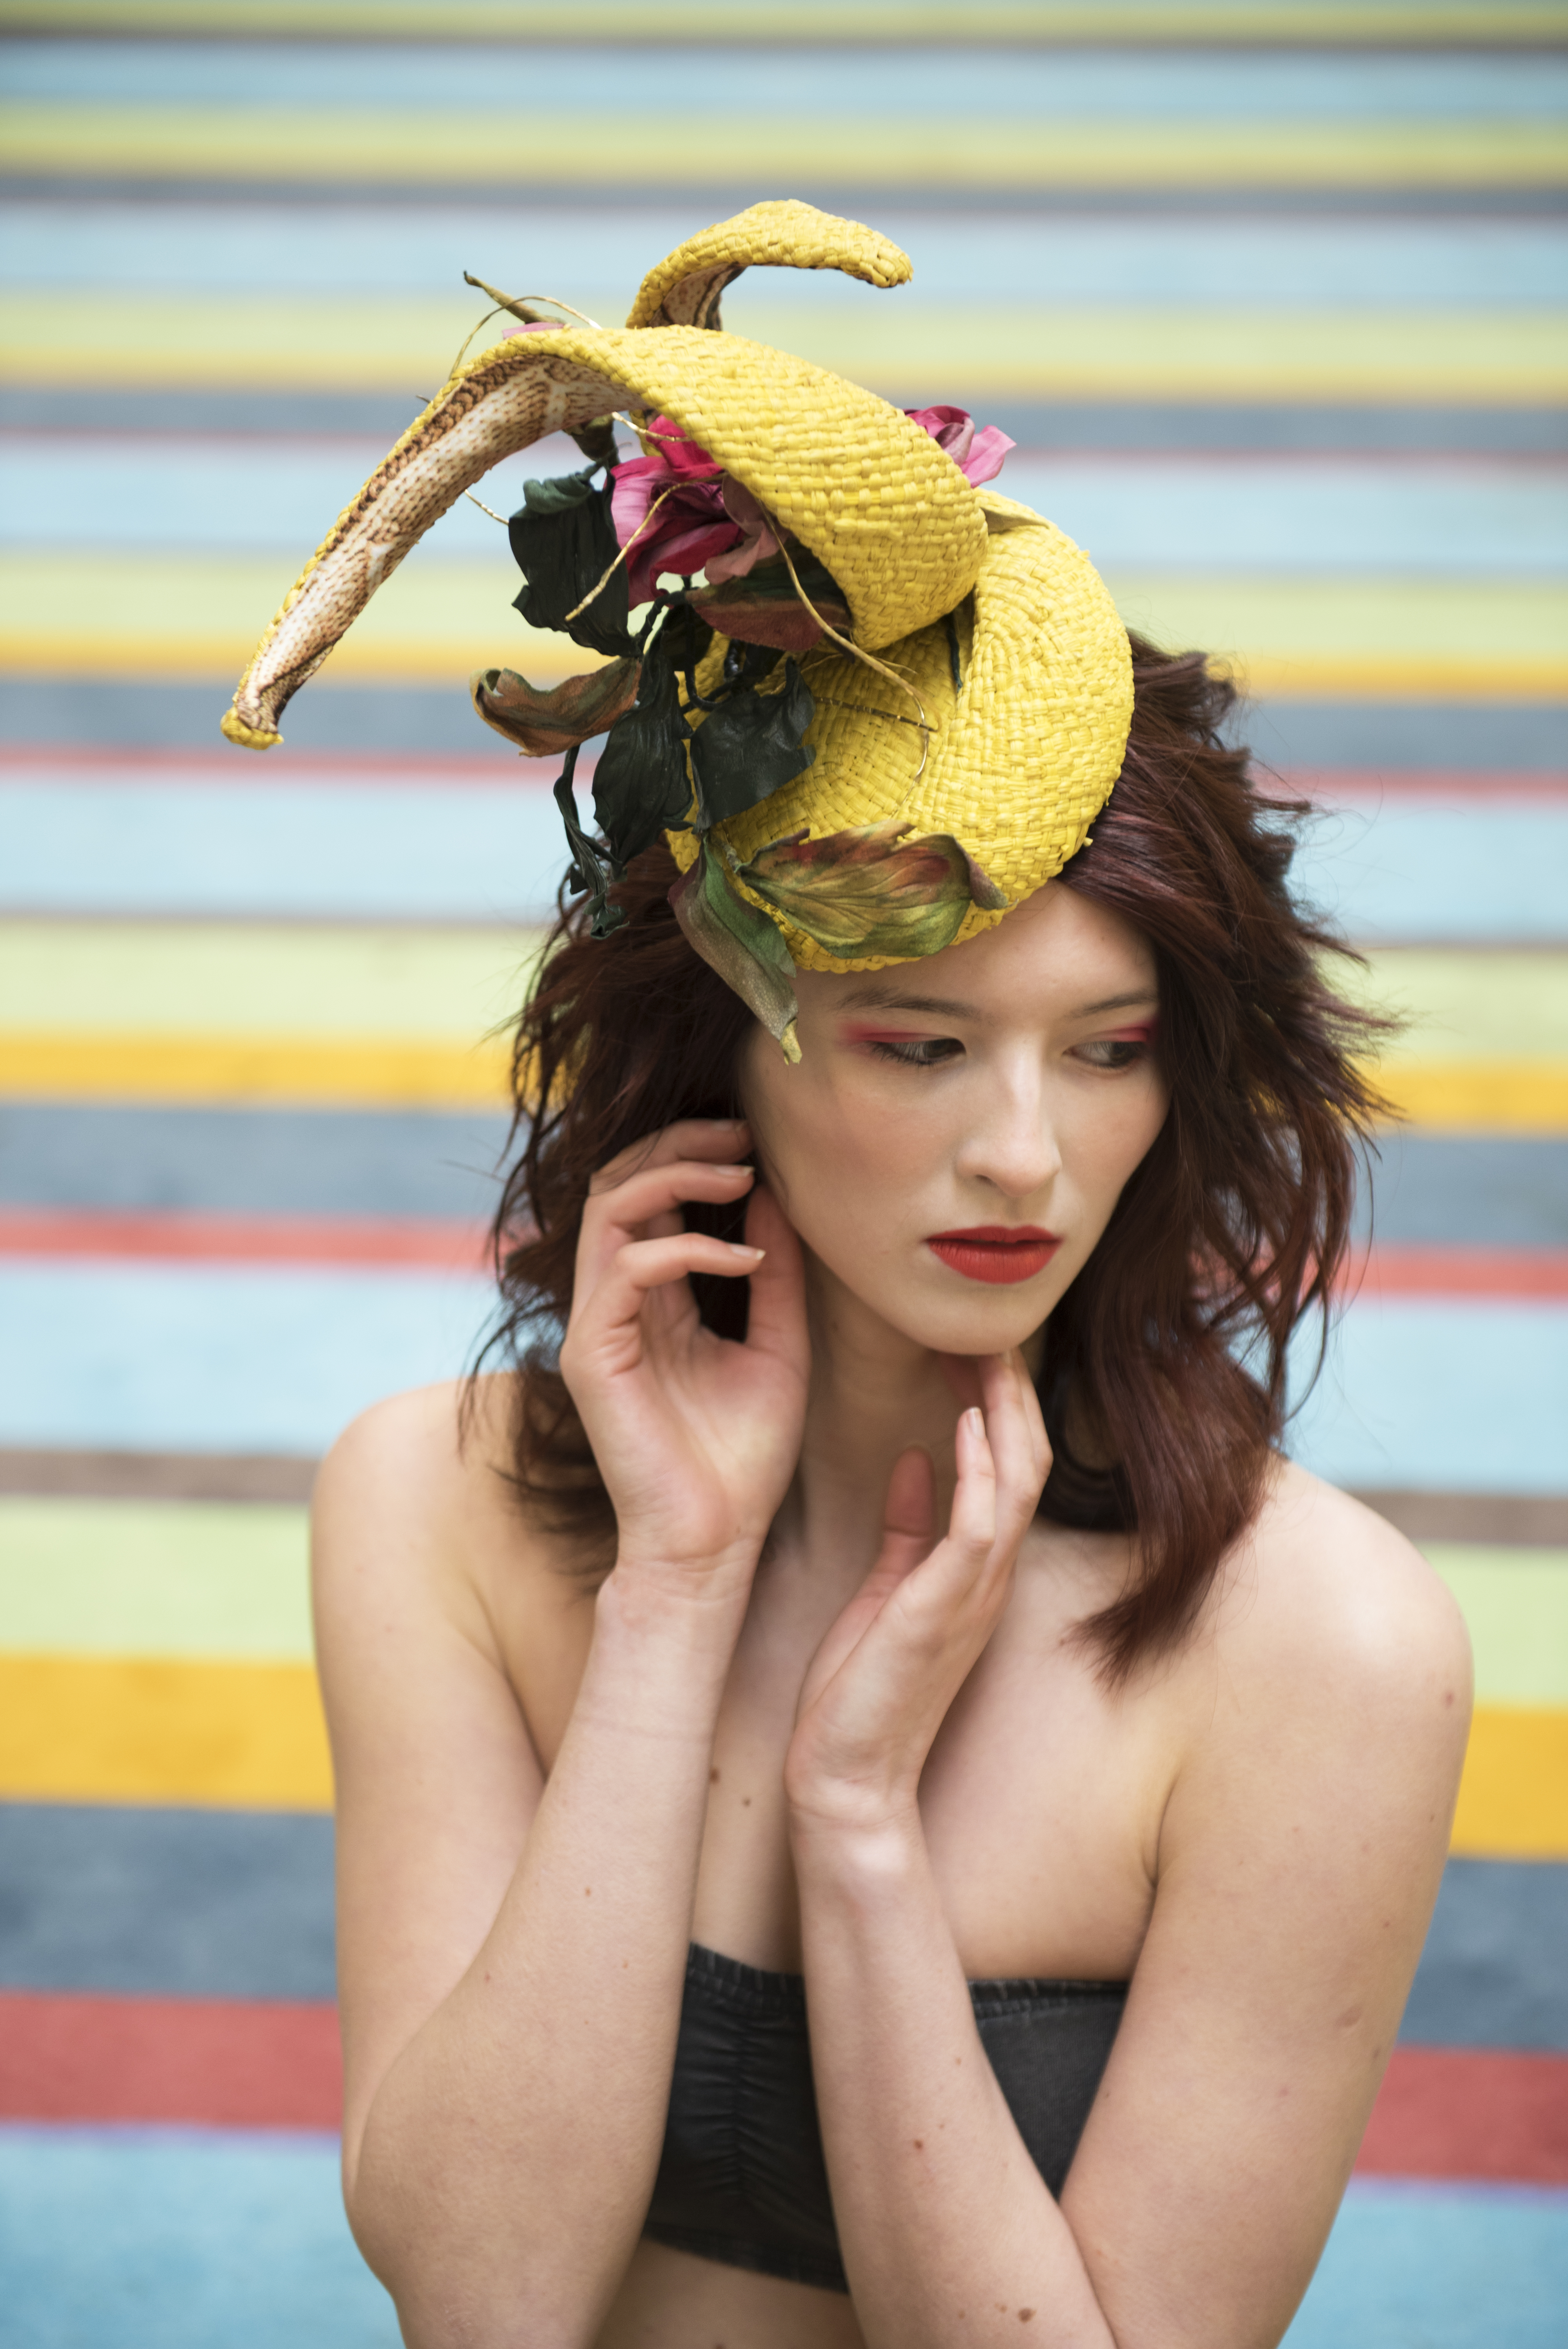 Editorial style makeup, bright orange lips, flawless foundation and a high fashion headpiece.  Photoshoot took place at Tate Modern London